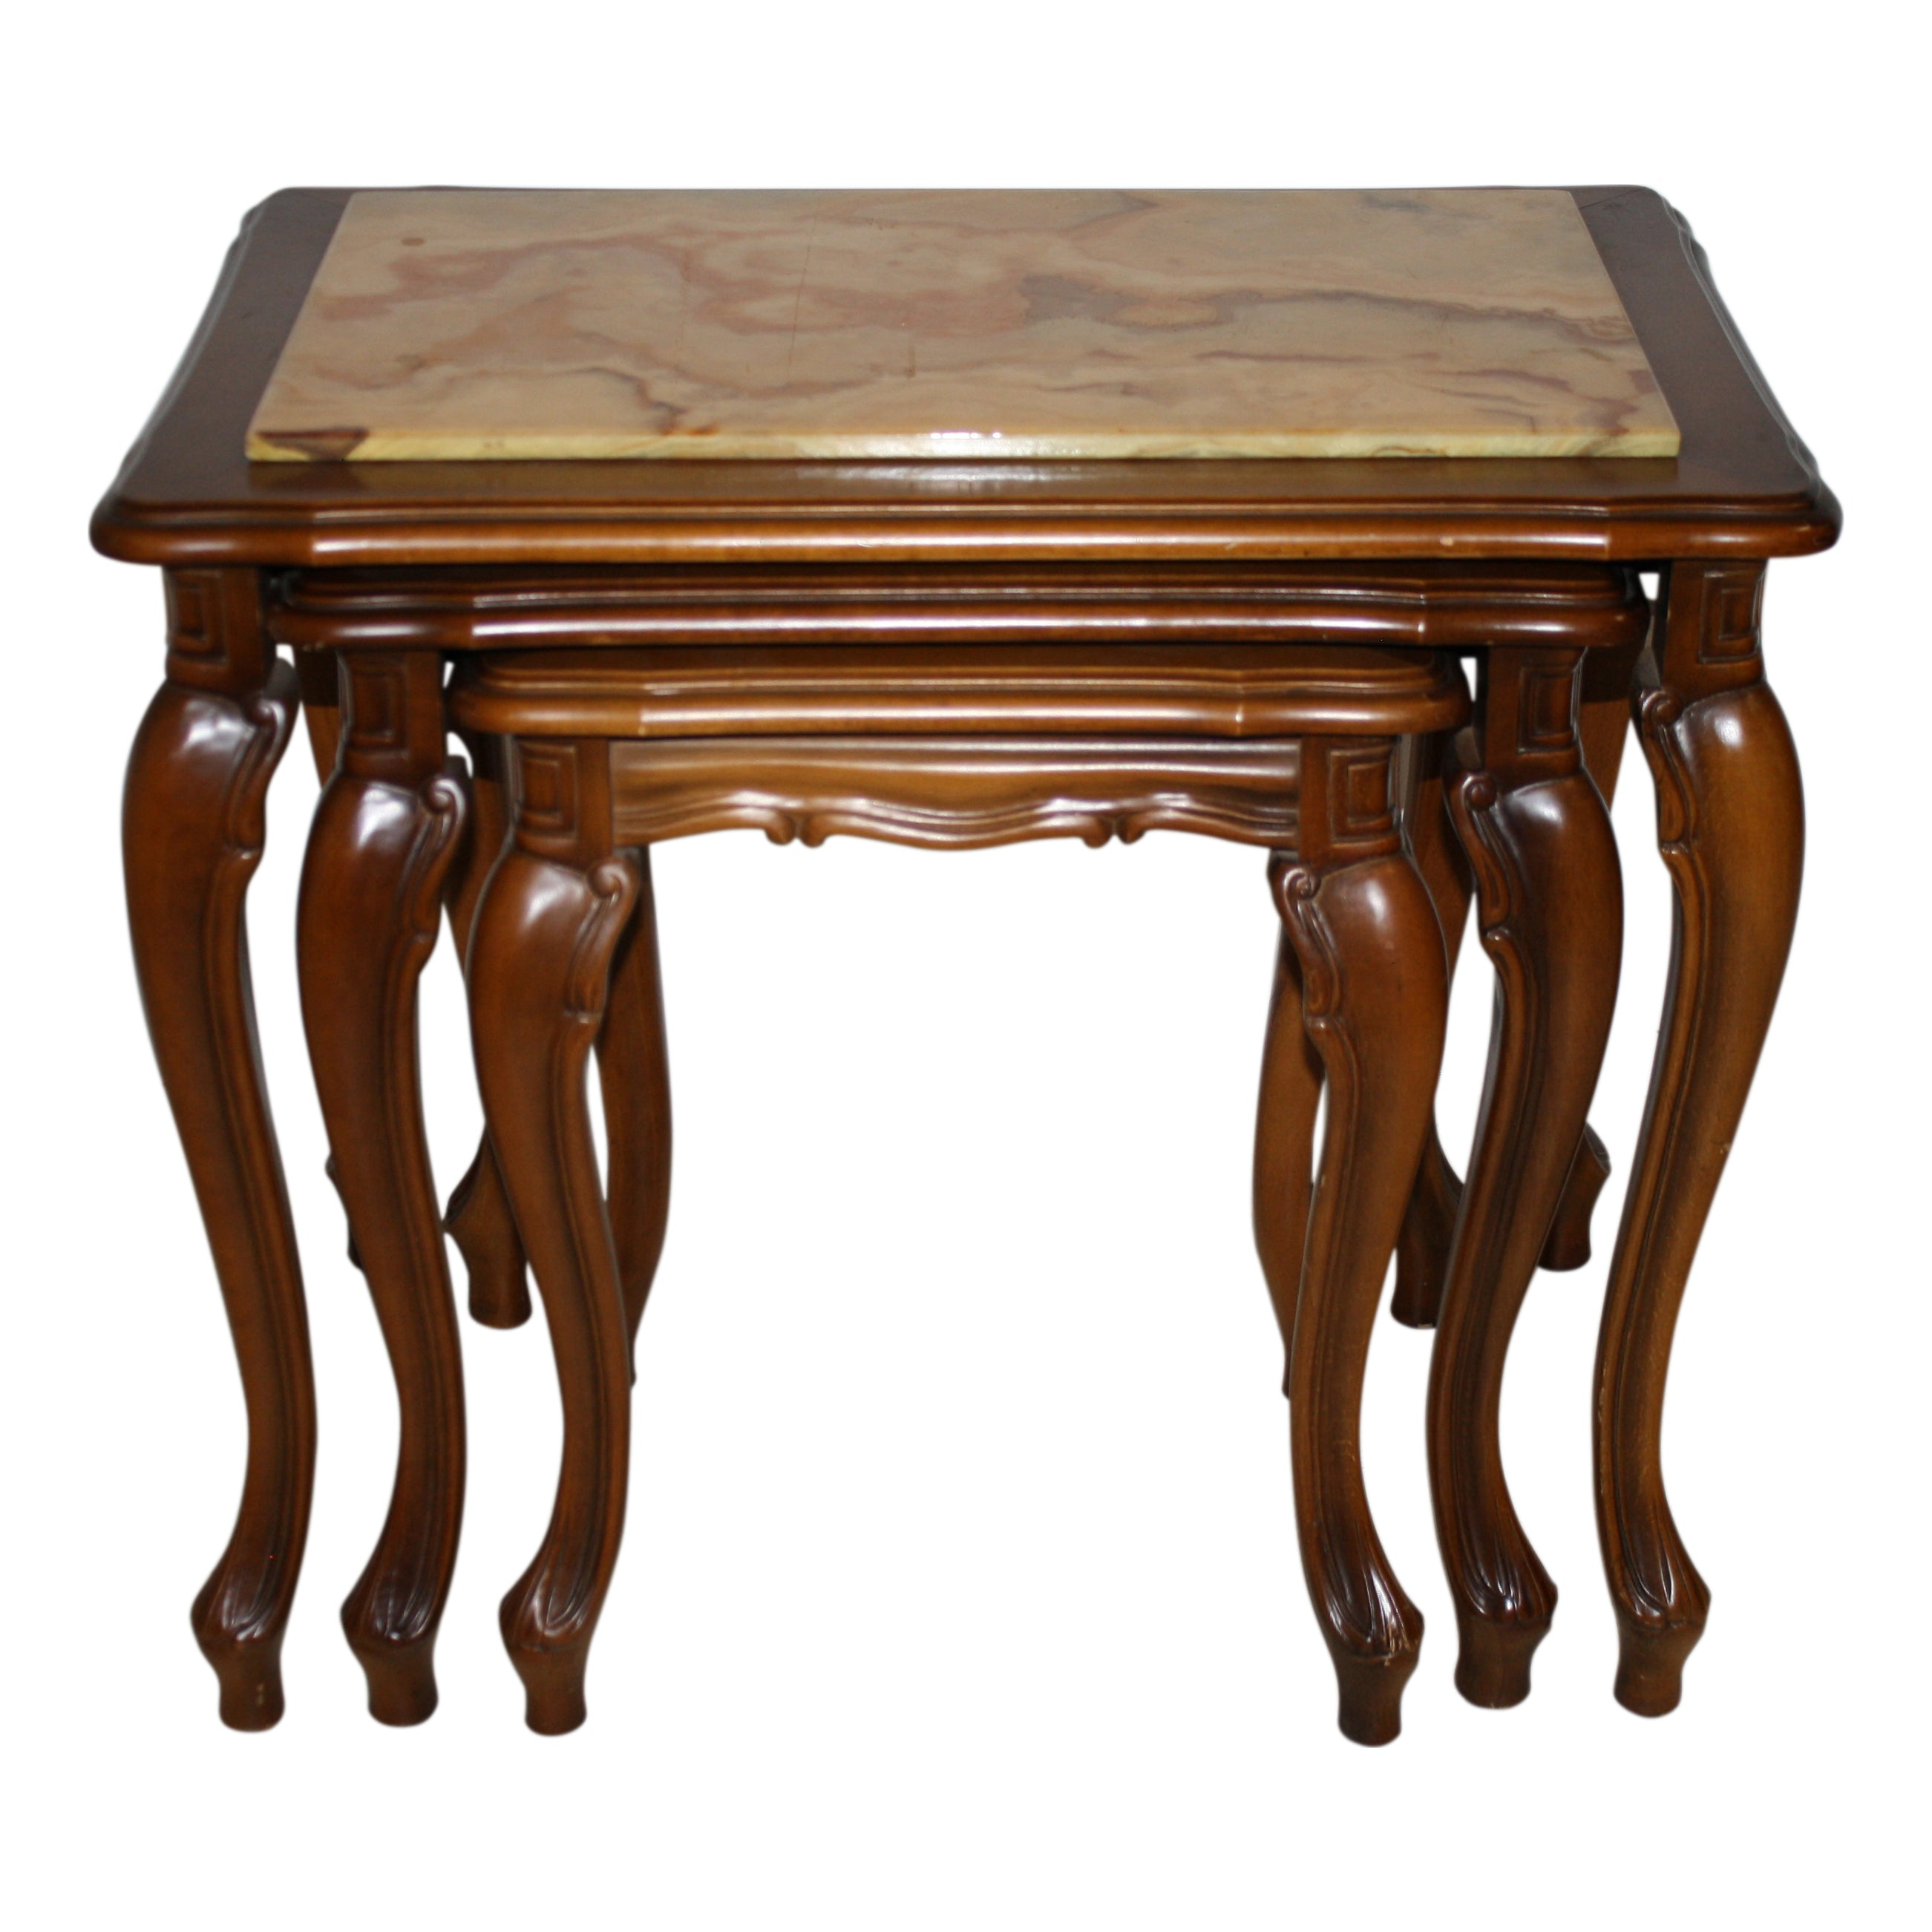 Walnut Nesting Tables with Marble Tops